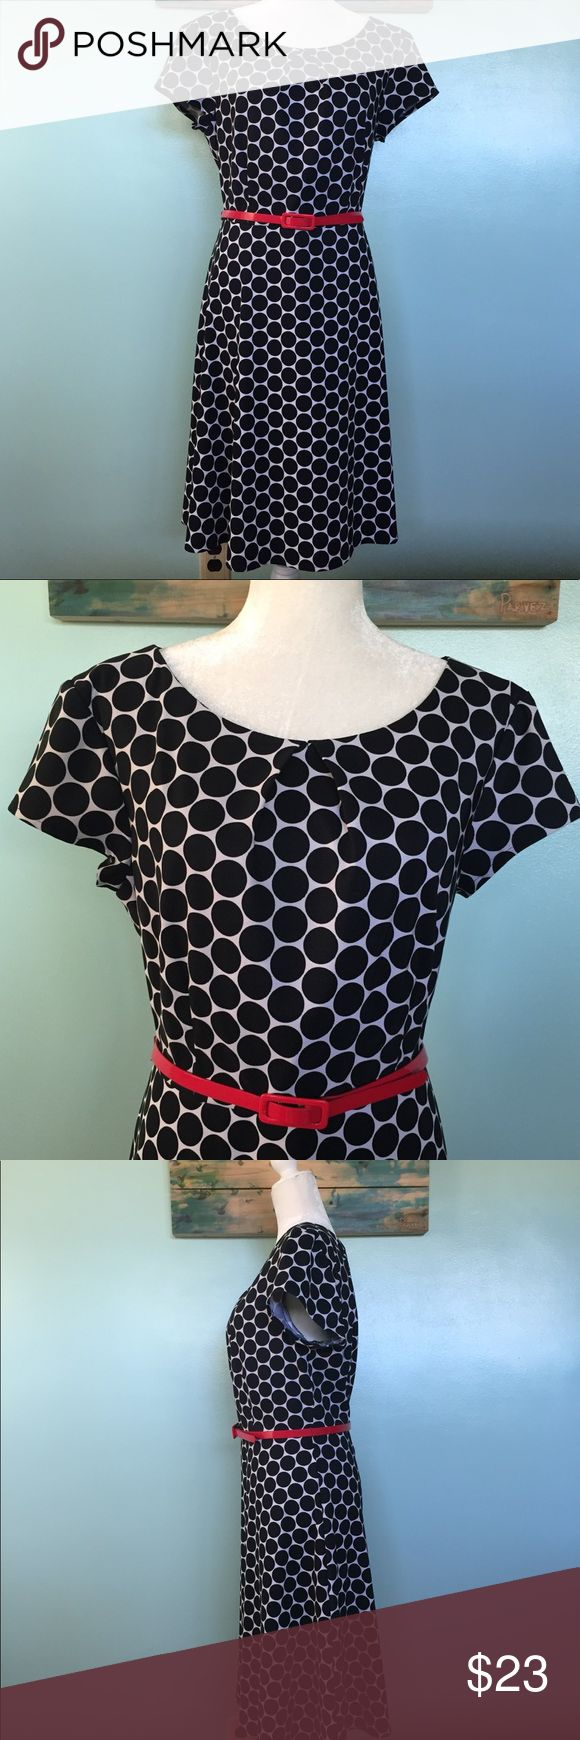 """Connected Apparel Black/White Polka Dot Dress - 14 Beautiful Connected Apparel Black and white polka dot dress with red belt. This dress has a little stretch to it.  It was gently worn a few times, but has no stains, tears or alterations.  Last two pics are only to show fitting.  Approximate measurements laying flat: shoulder to sleeve 4"""", sleeve 4 3/4"""", chest armpit to armpit 19 1/2"""", shoulder to waist 17"""", waist 17 1/2"""", waist to seam length  23 1/3"""".   ✅ Bundle & Save ✅ Open to offers ❌…"""